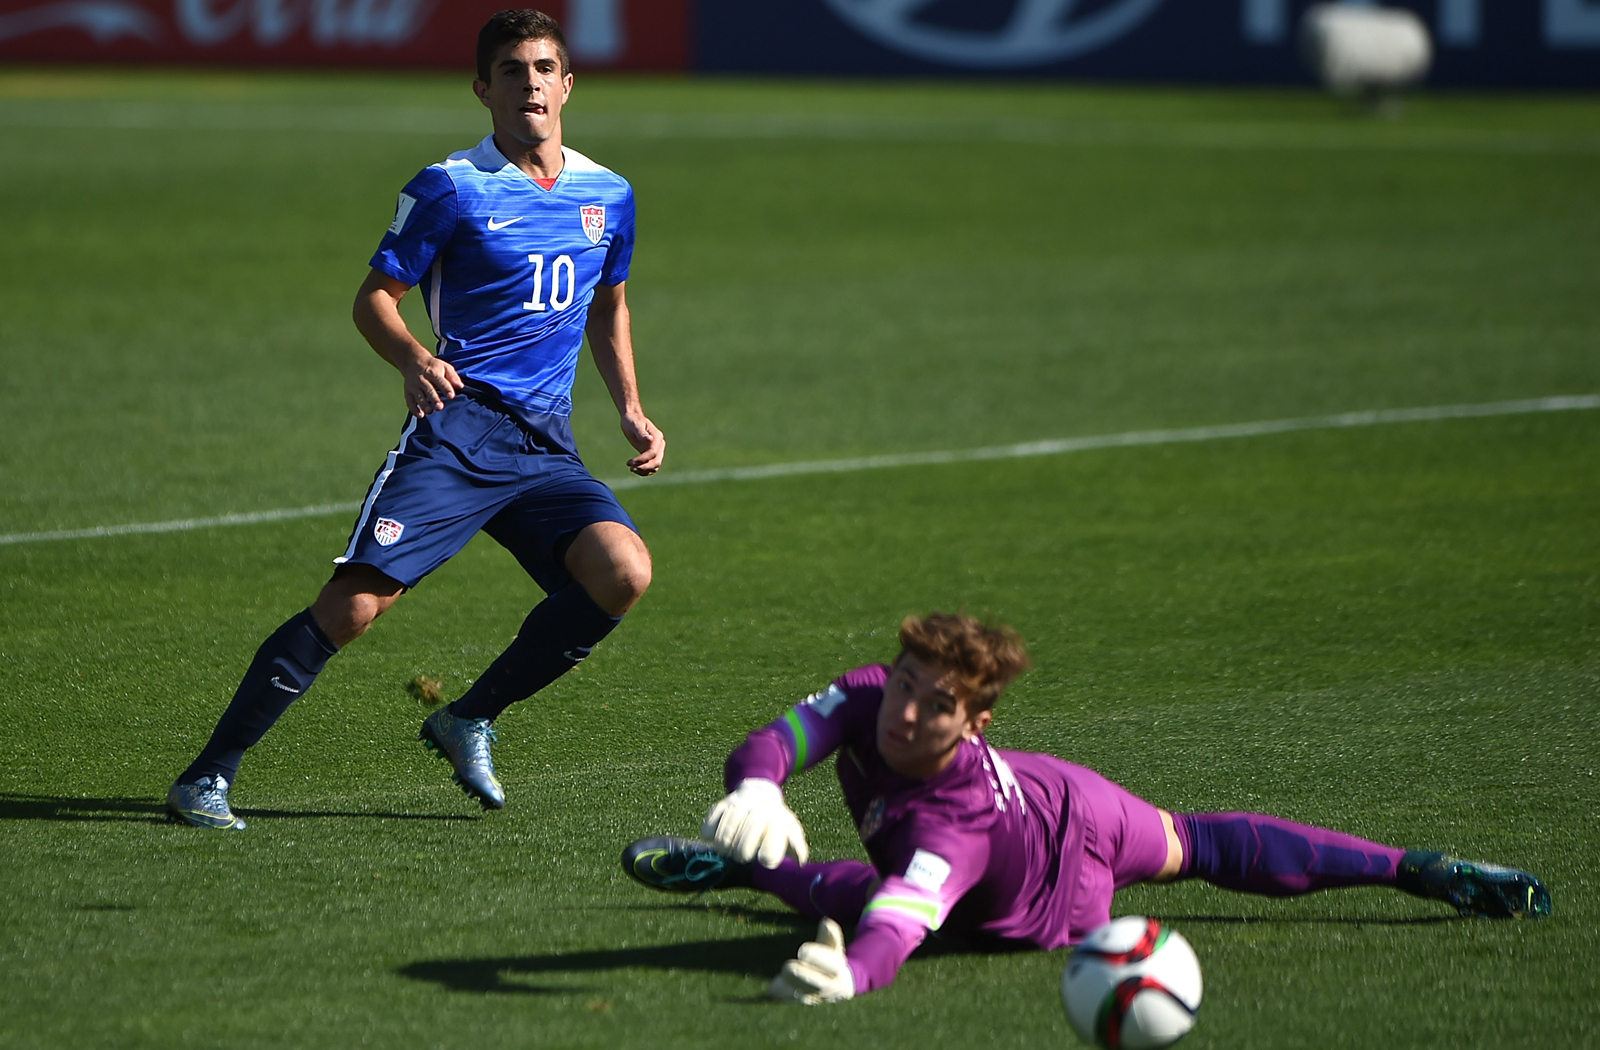 USA U-17 midfielder Christian Pulisic watches his opening goal find the back of the net in the Americans' 2-2 draw with Croatia at the World Cup. The U.S. led 2-0 on Pulisic's goal and assist to Brandon Vazquez, but the European side mounted a furious rally to salvage a point.